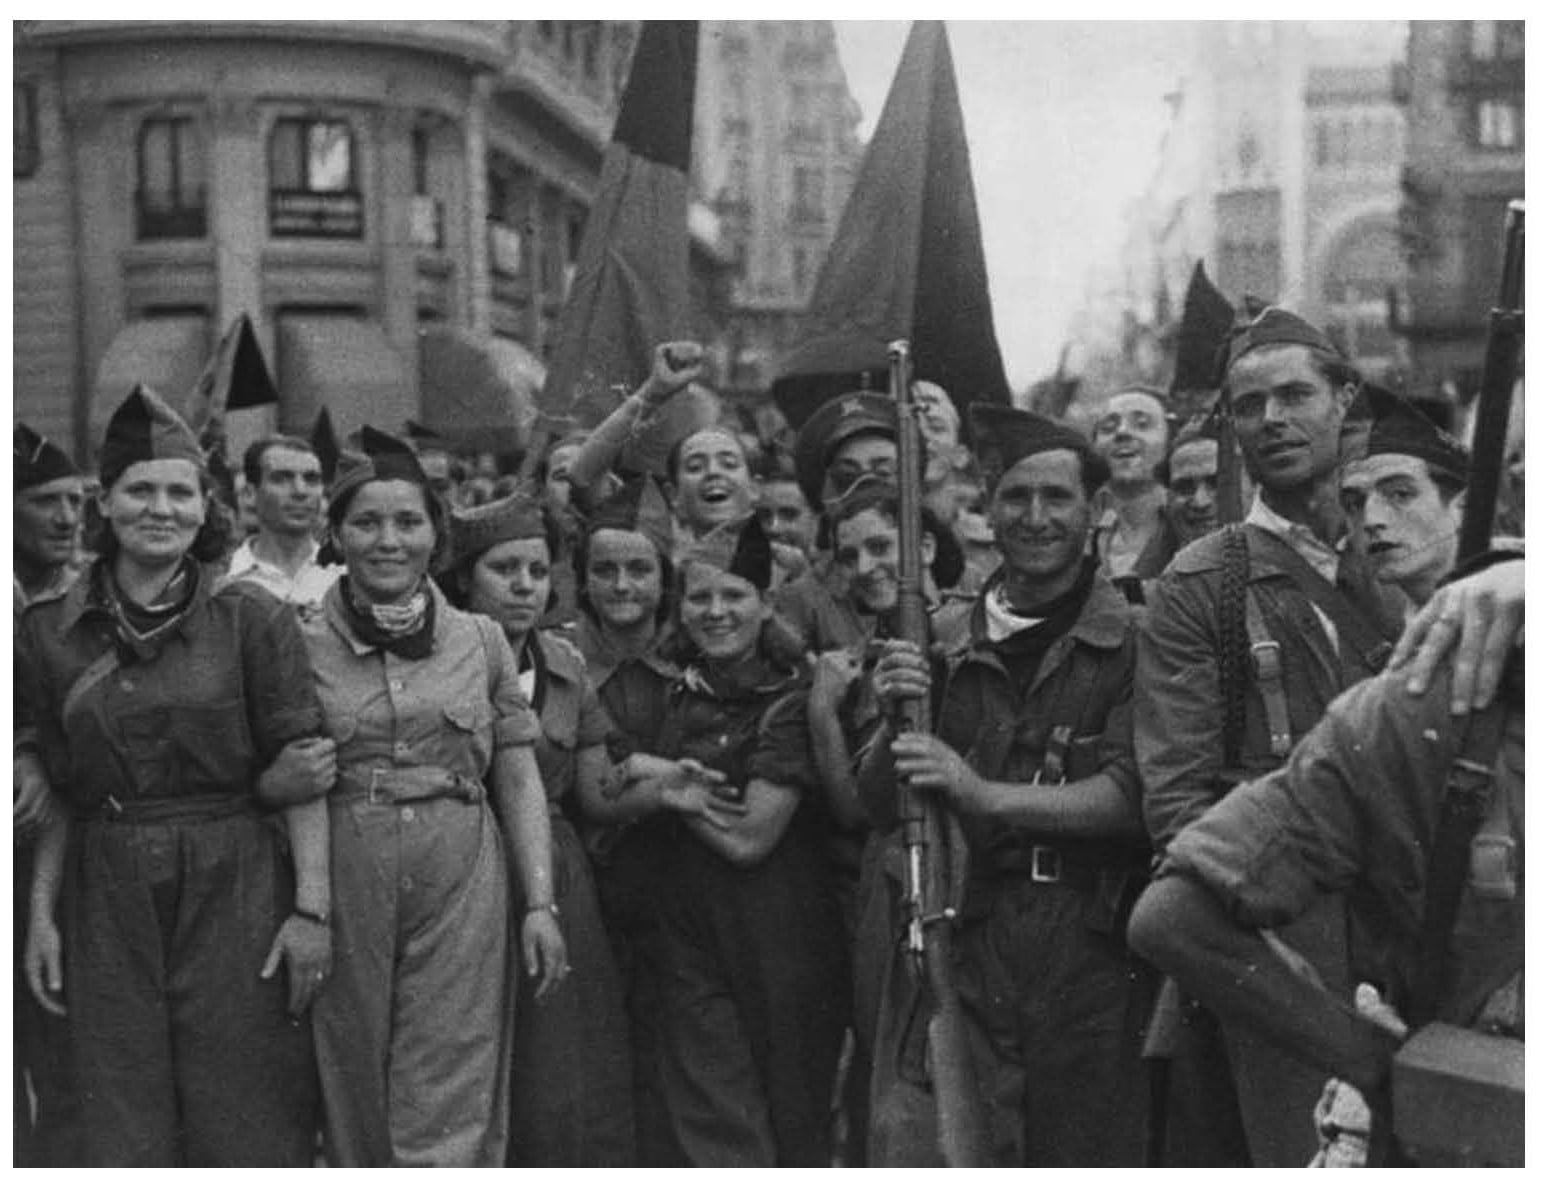 Anarchists militia from CNT march on the streets of Barcelona July 1936 during the Spanish Civil War. Photo: Unknown. Public Domain.